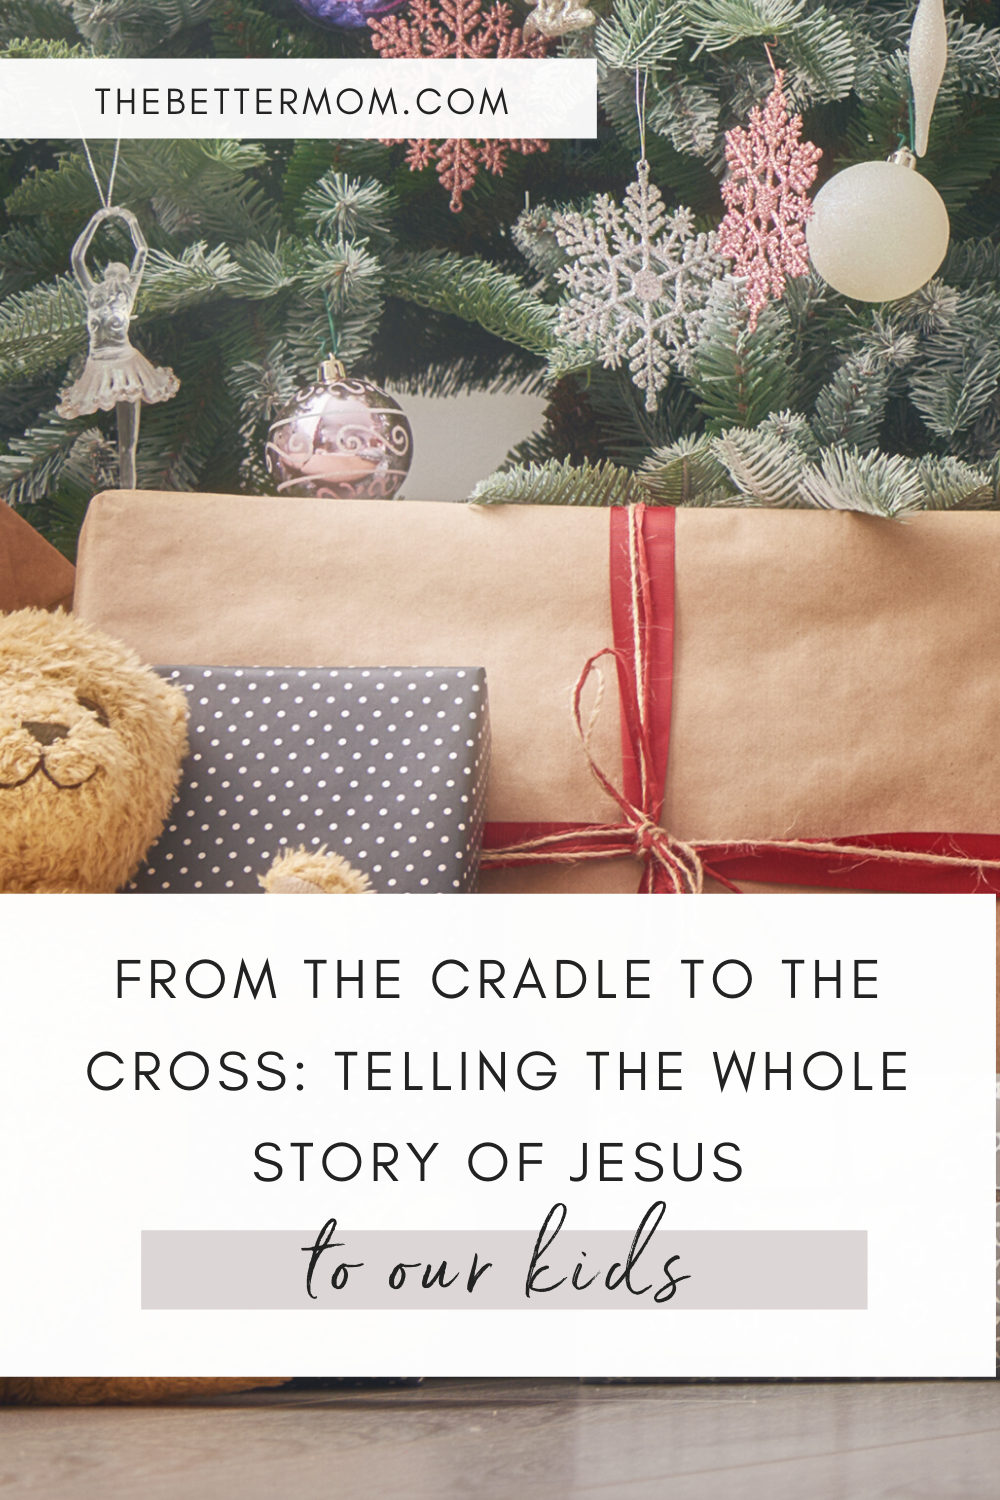 Sharing the story of the birth of Jesus with our children this time of year is always so meaningful but how can we take it a step further and tell the whole story? We are sharing a few creative ways to tell the entire story of the gospel to your loved ones this Christmas...